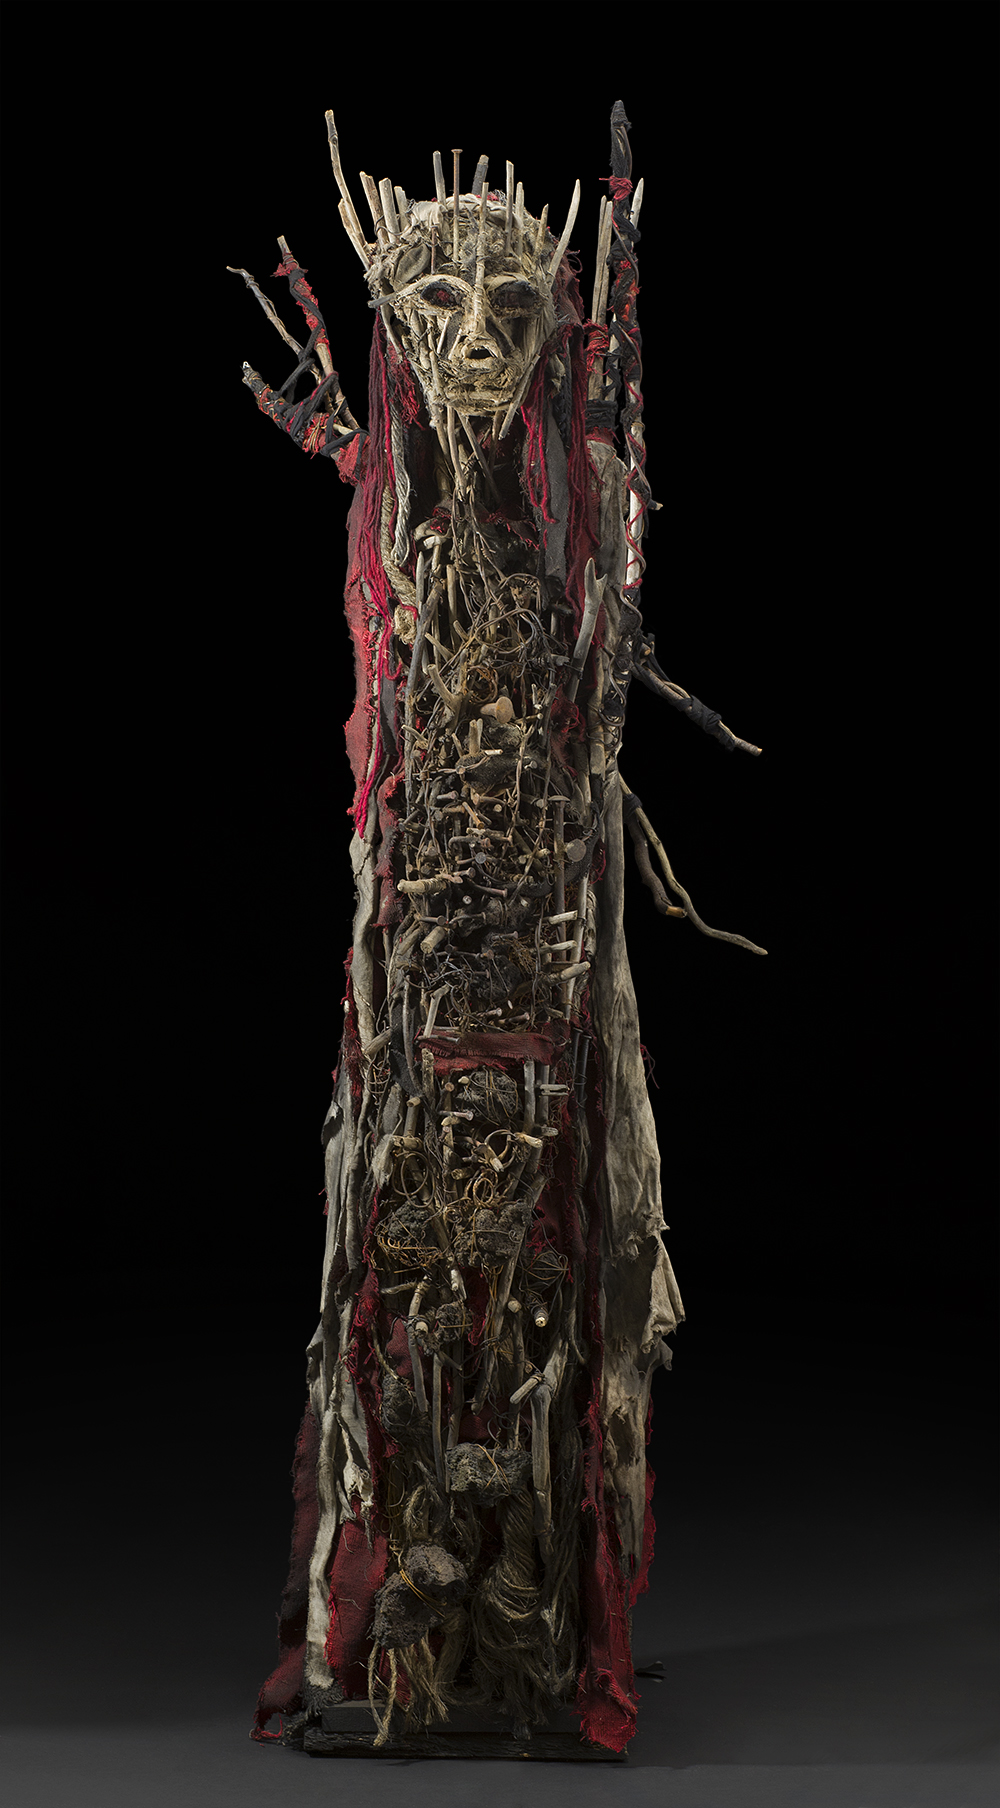 Sylvain and Ghyslaine Staelens    Personnage  , 2015 Wood, metal, cloth, found objects 66 x 21 x 14 inches| 167.6 x 53.3 x 35.6 cm GSS 43